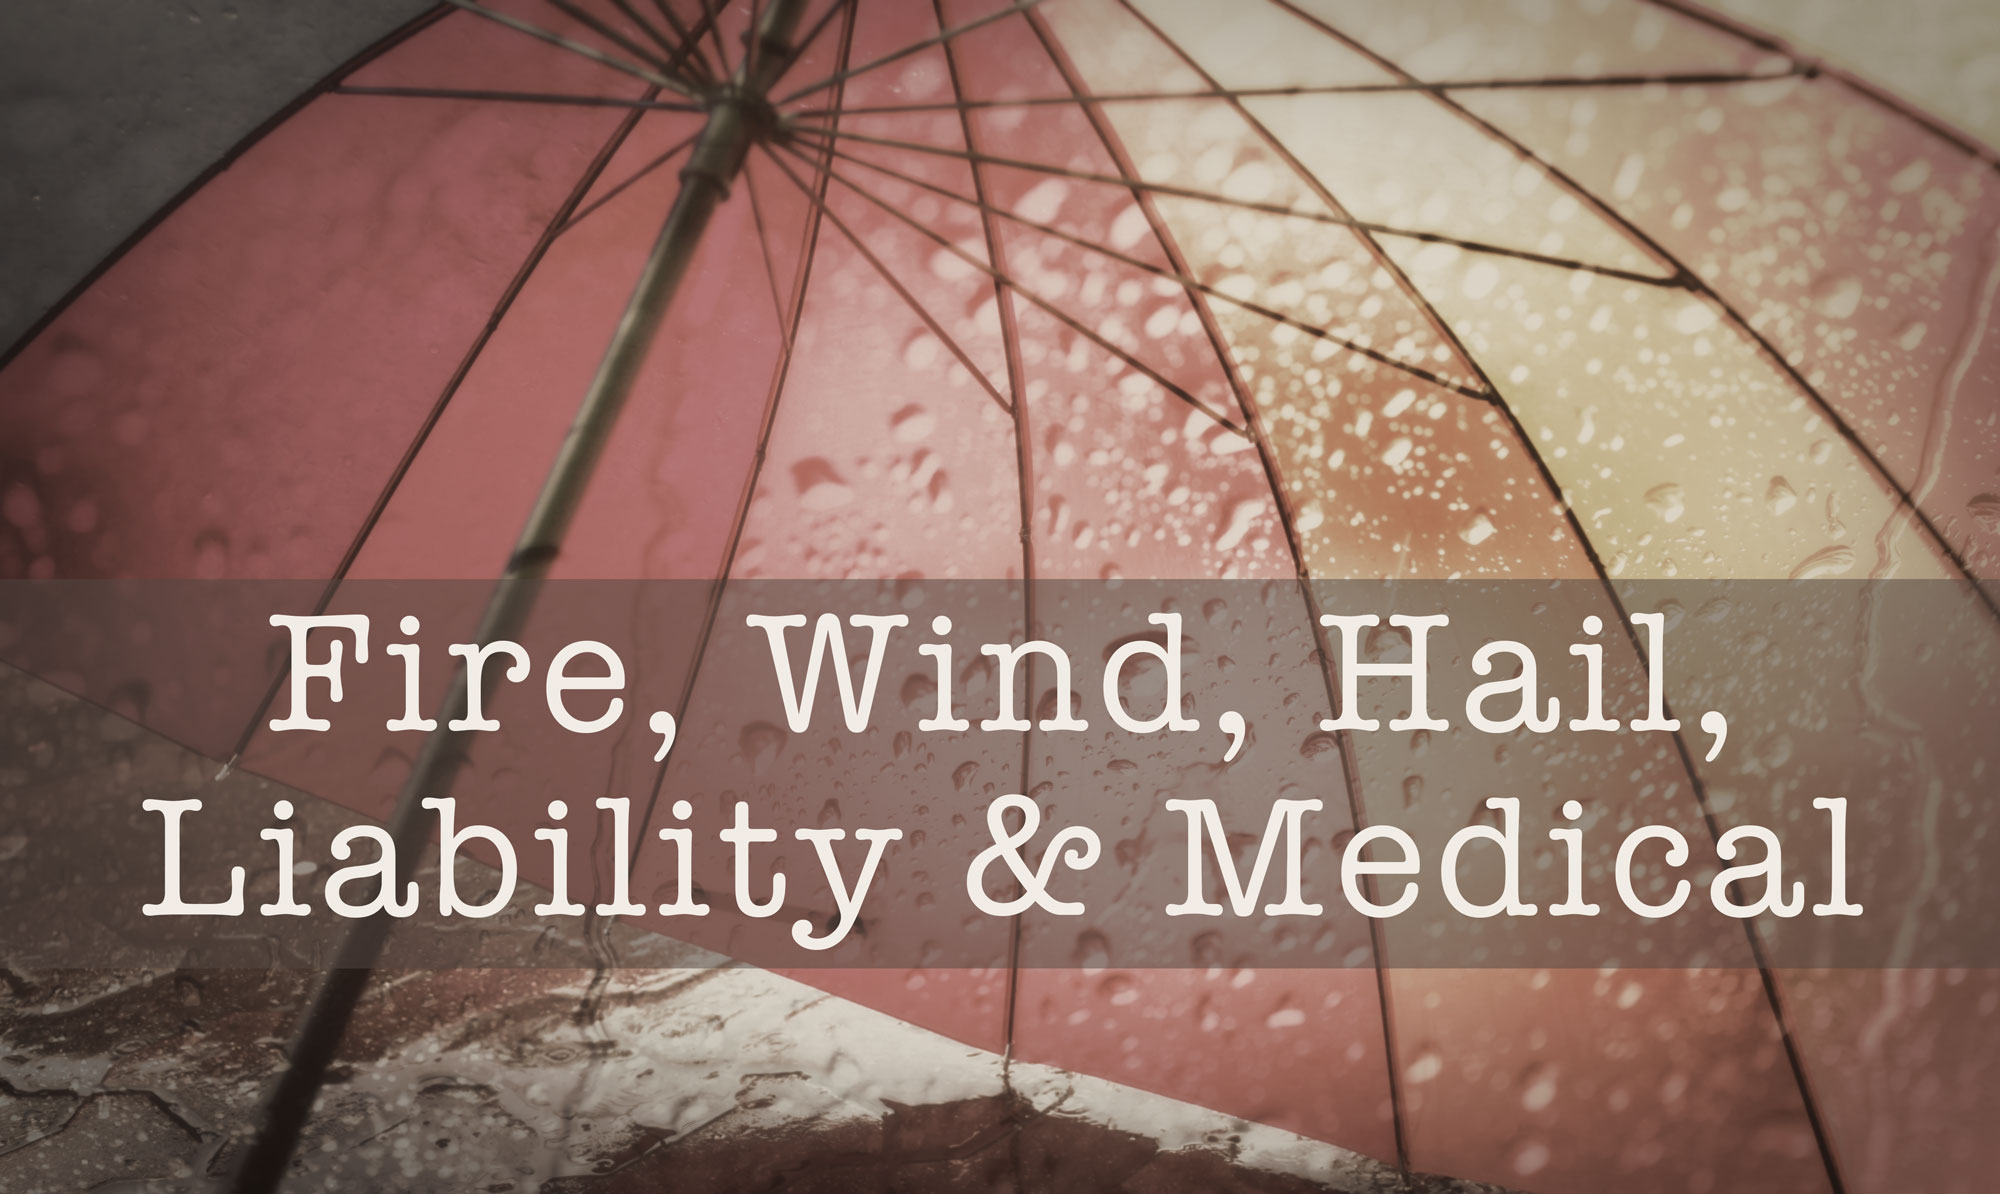 Under the umbrella: Fire, Wind, Hail, Liability & Medical